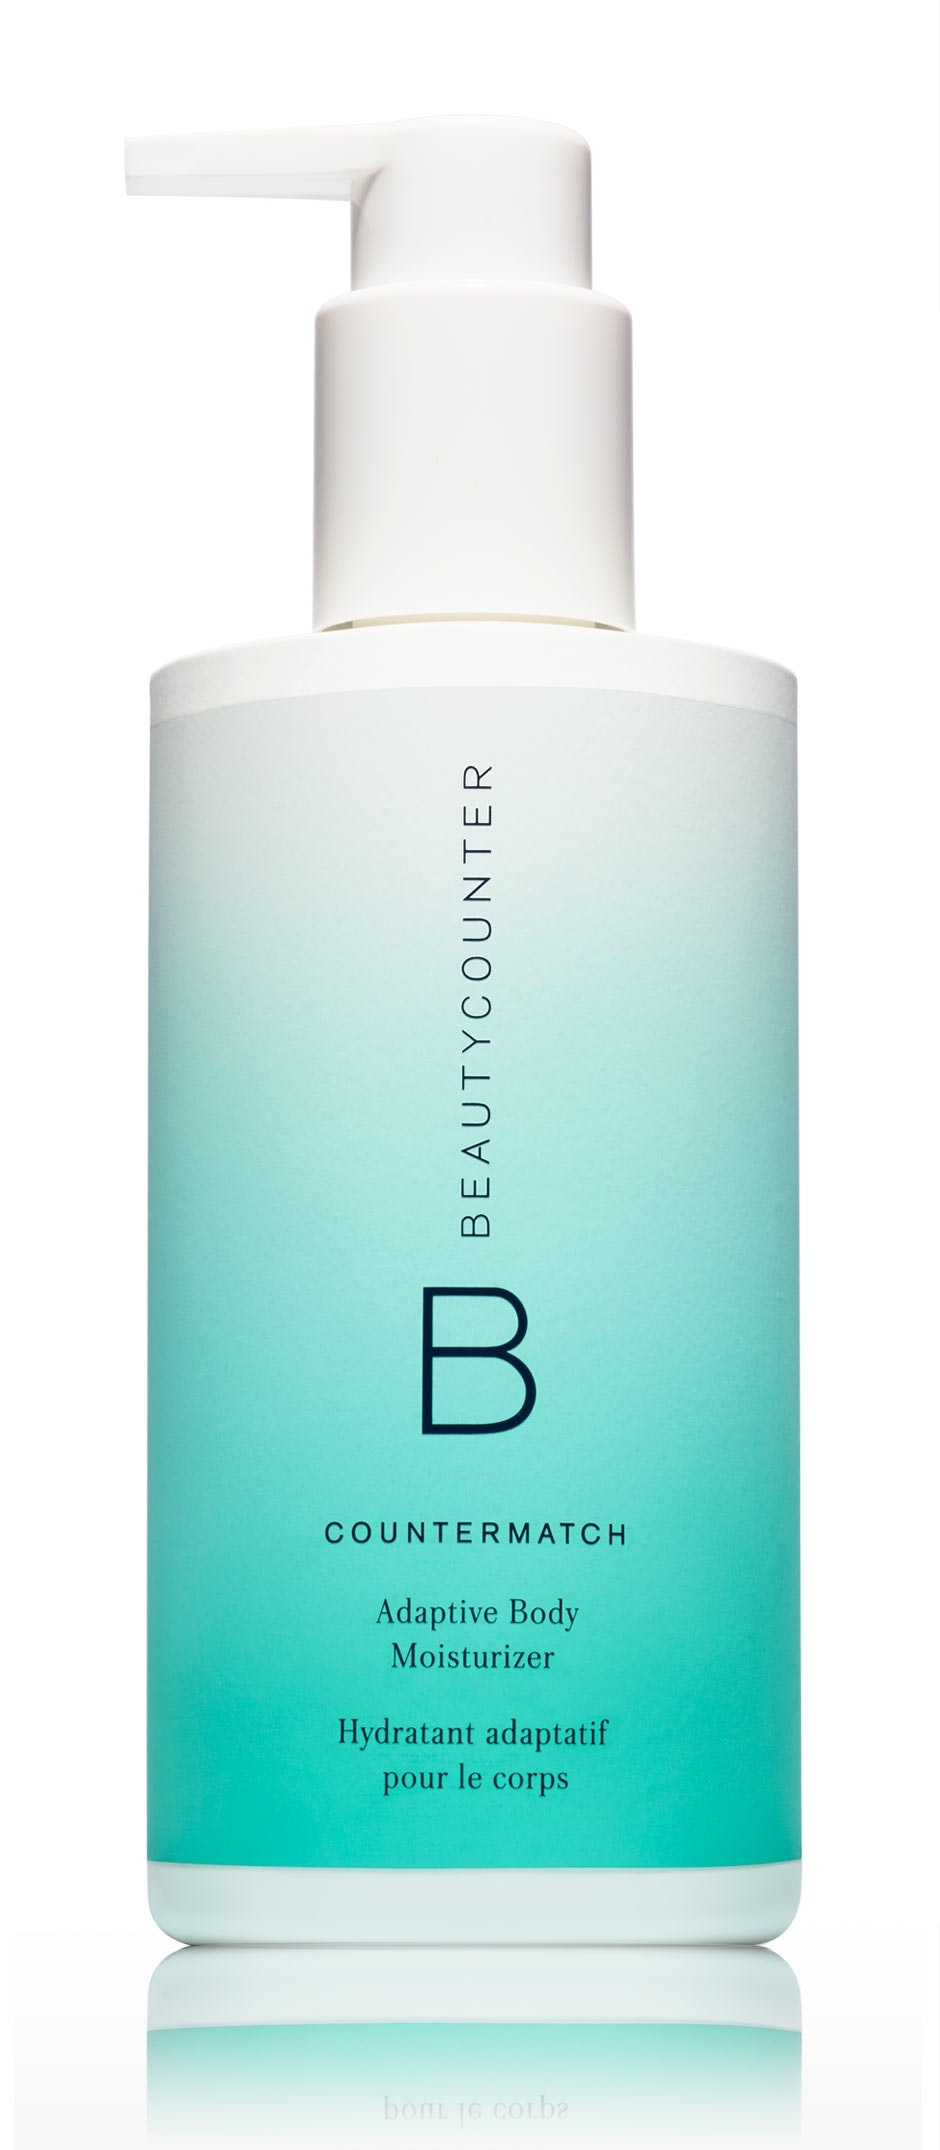 Countermatch Adaptive Body Moisturizer